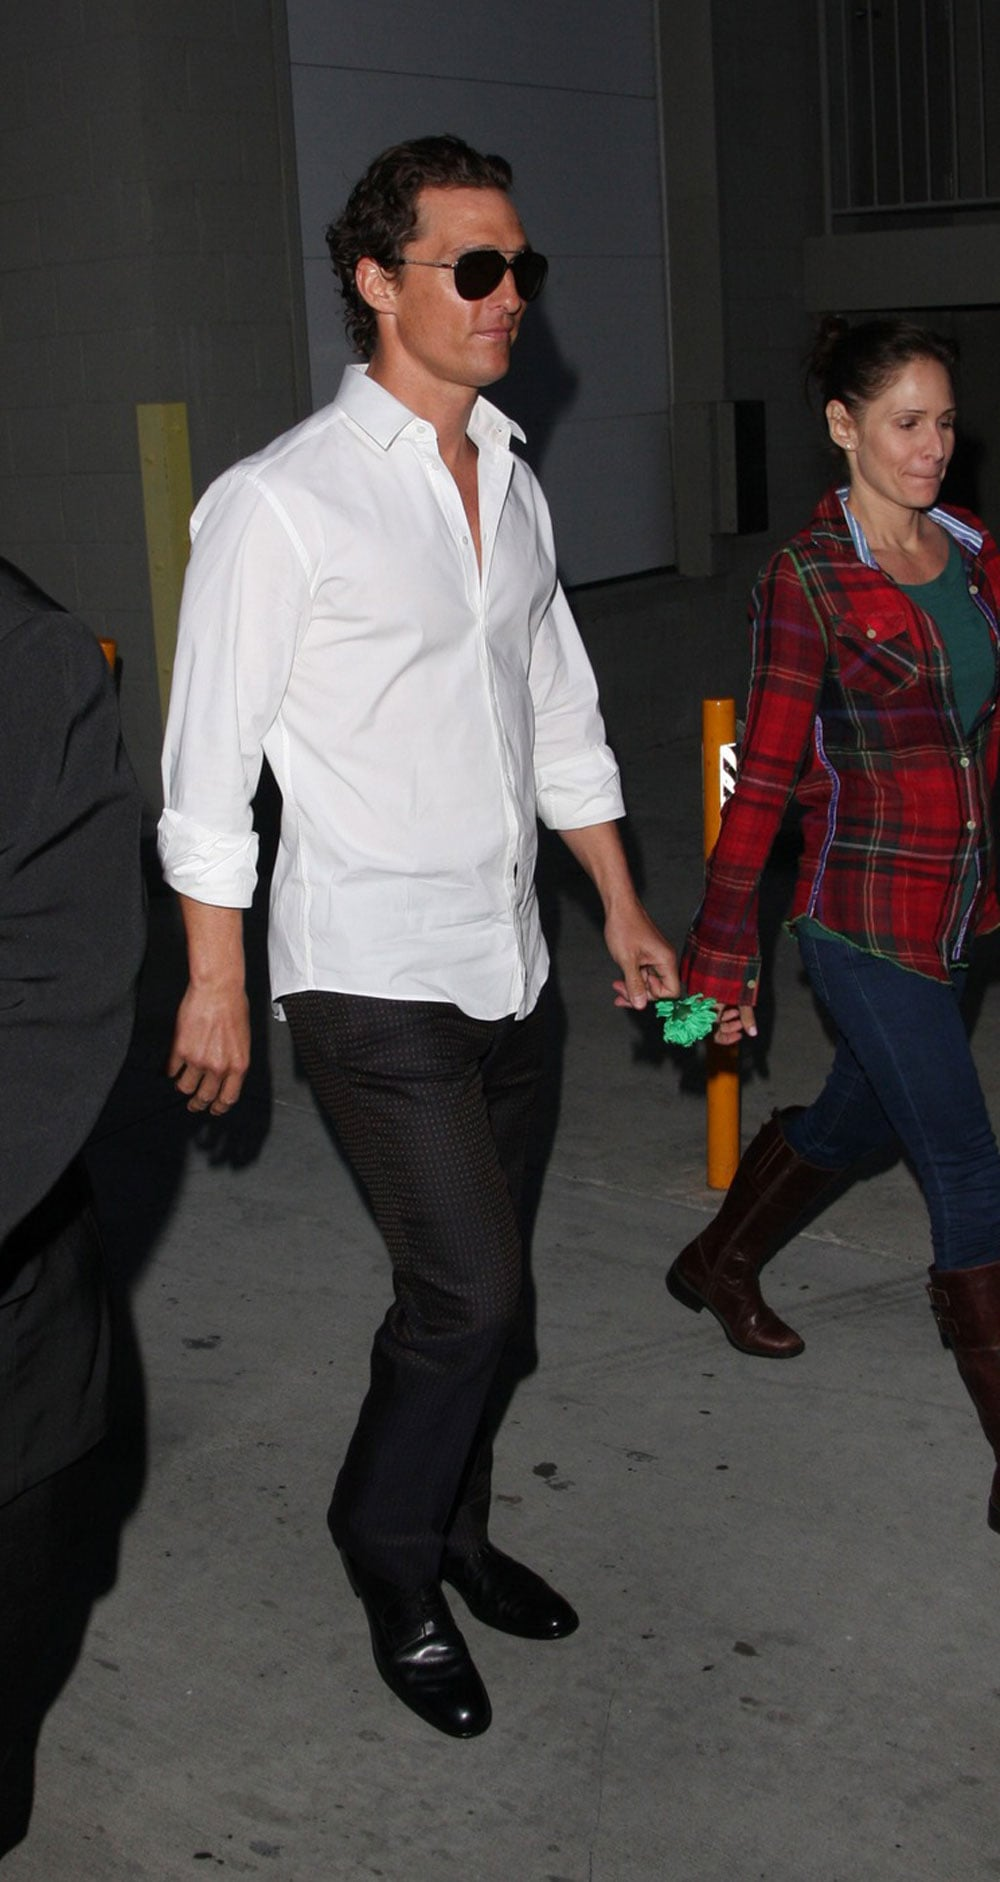 Matthew McConaughey held a green carnation after a taping of Jimmy Kimmel Live in LA on St. Patrick's Day in March 2011.